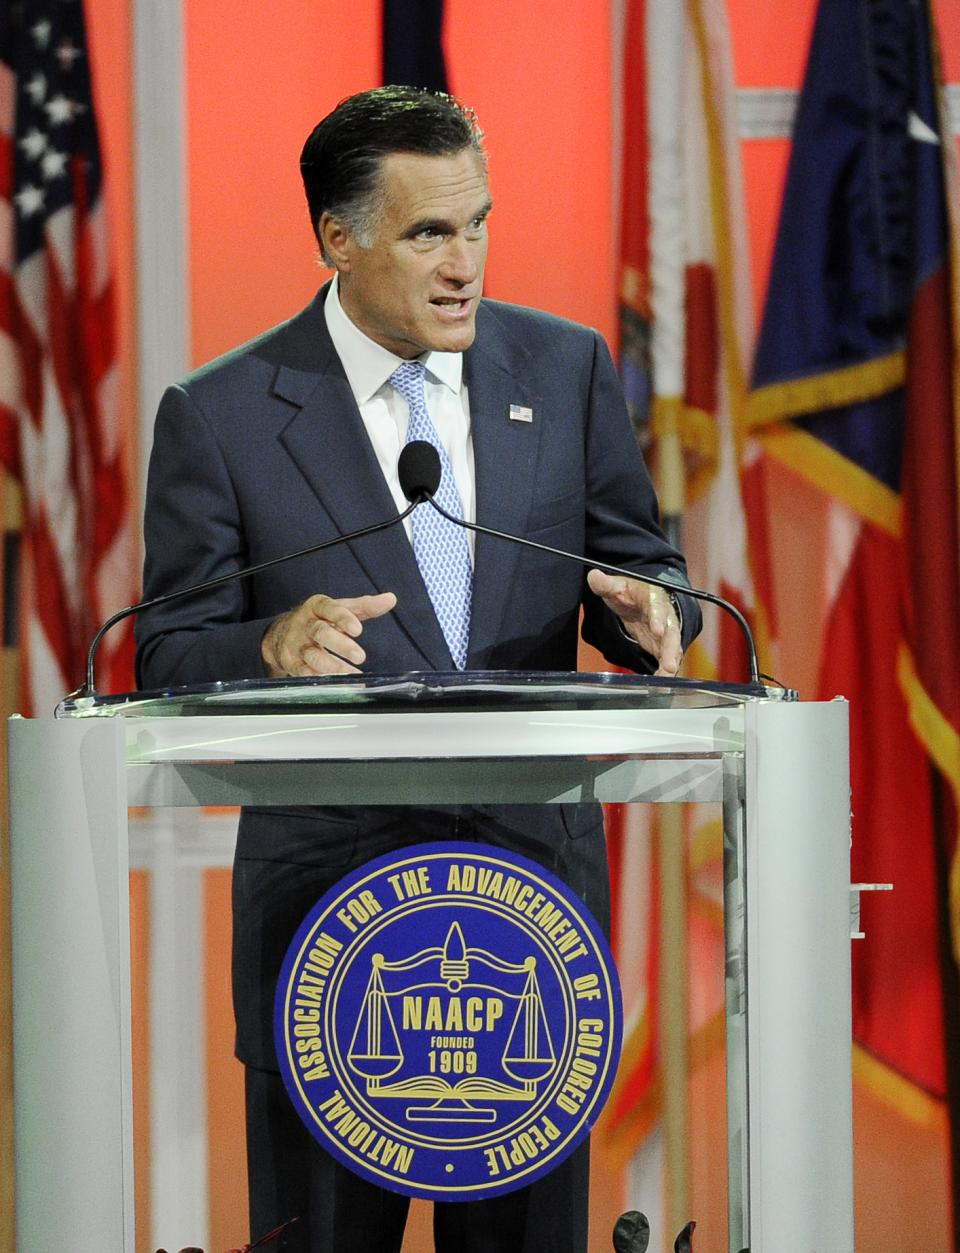 Republican presidential candidate, former Massachusetts Gov. Mitt Romney gestures during a speech to the NAACP annual convention, Wednesday, July 11, 2012, in Houston. (AP Photo/Pat Sullivan)